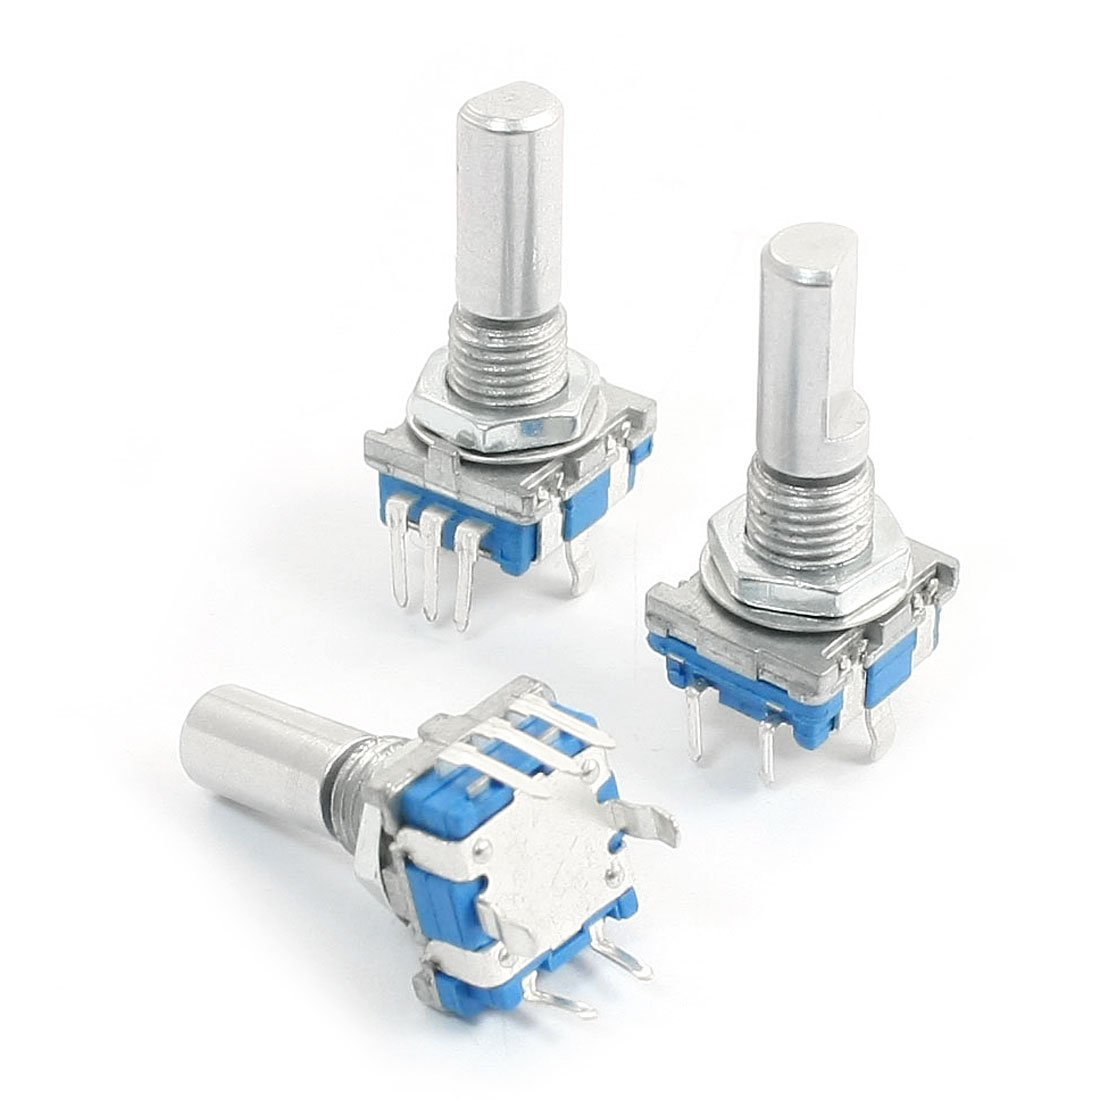 BOFO 3Pcs 6mm D Shaft 18 Position 360 Degree Rotary Encoder w Push Button in Switches from Lights Lighting